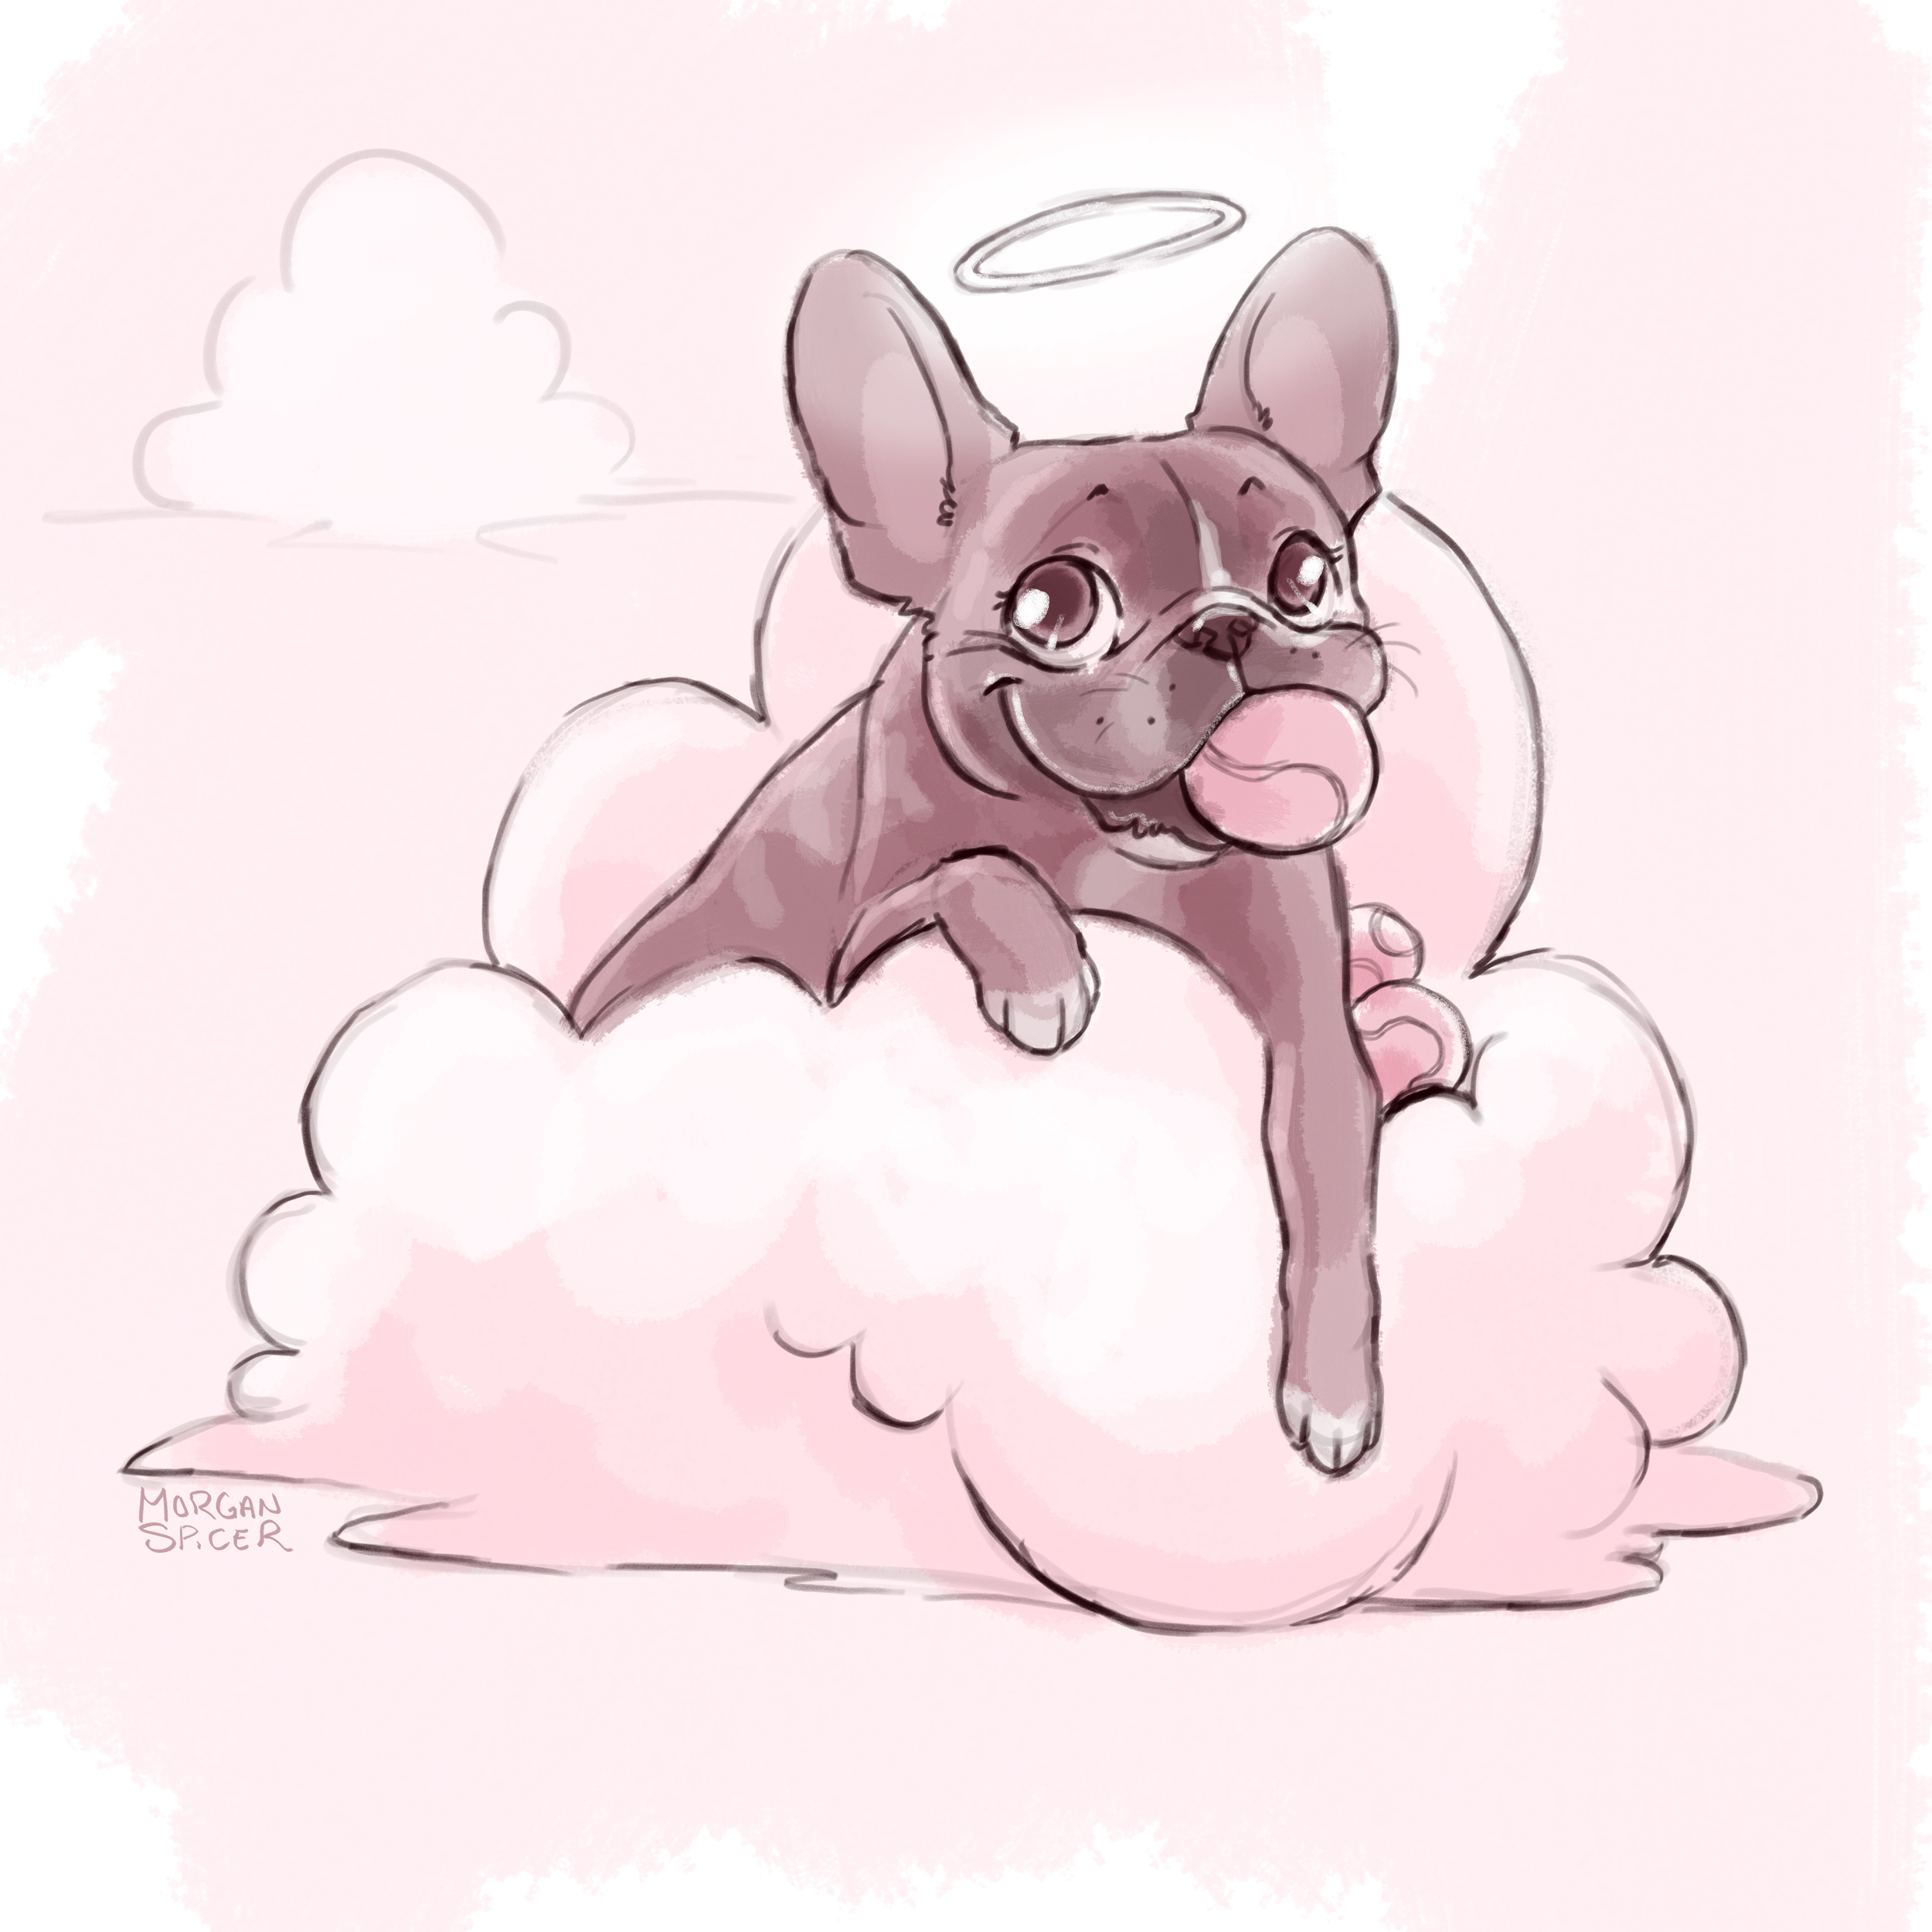 Charlotte, one of my favorite Frenchies and beloved heart dog of a dear friend.  Morgan Spicer (c) created this wonderful remembrance.